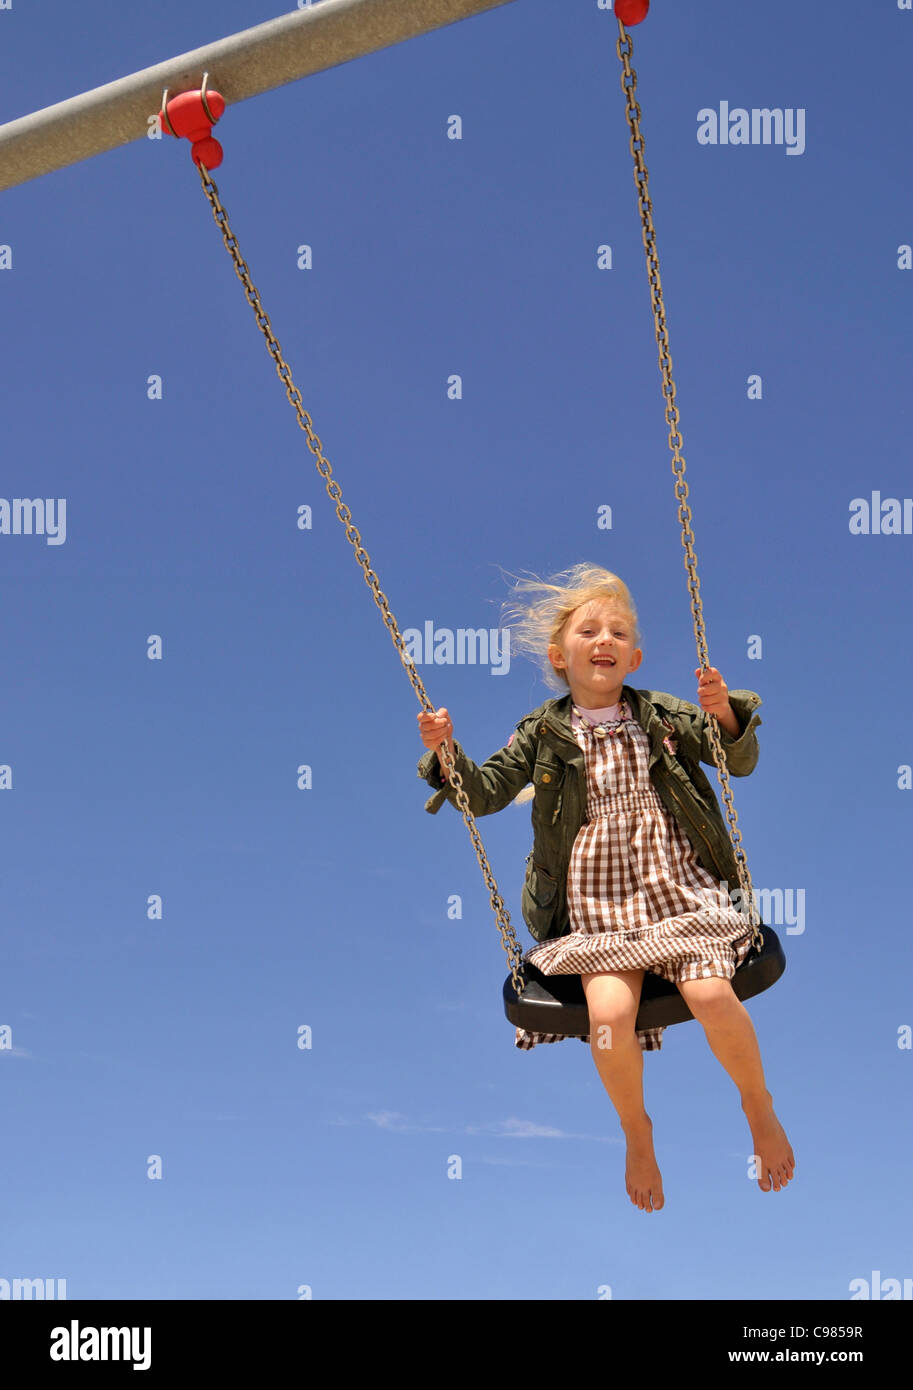 Small 6-year-old blonde girl on a playground, Germany, Europe - Stock Image